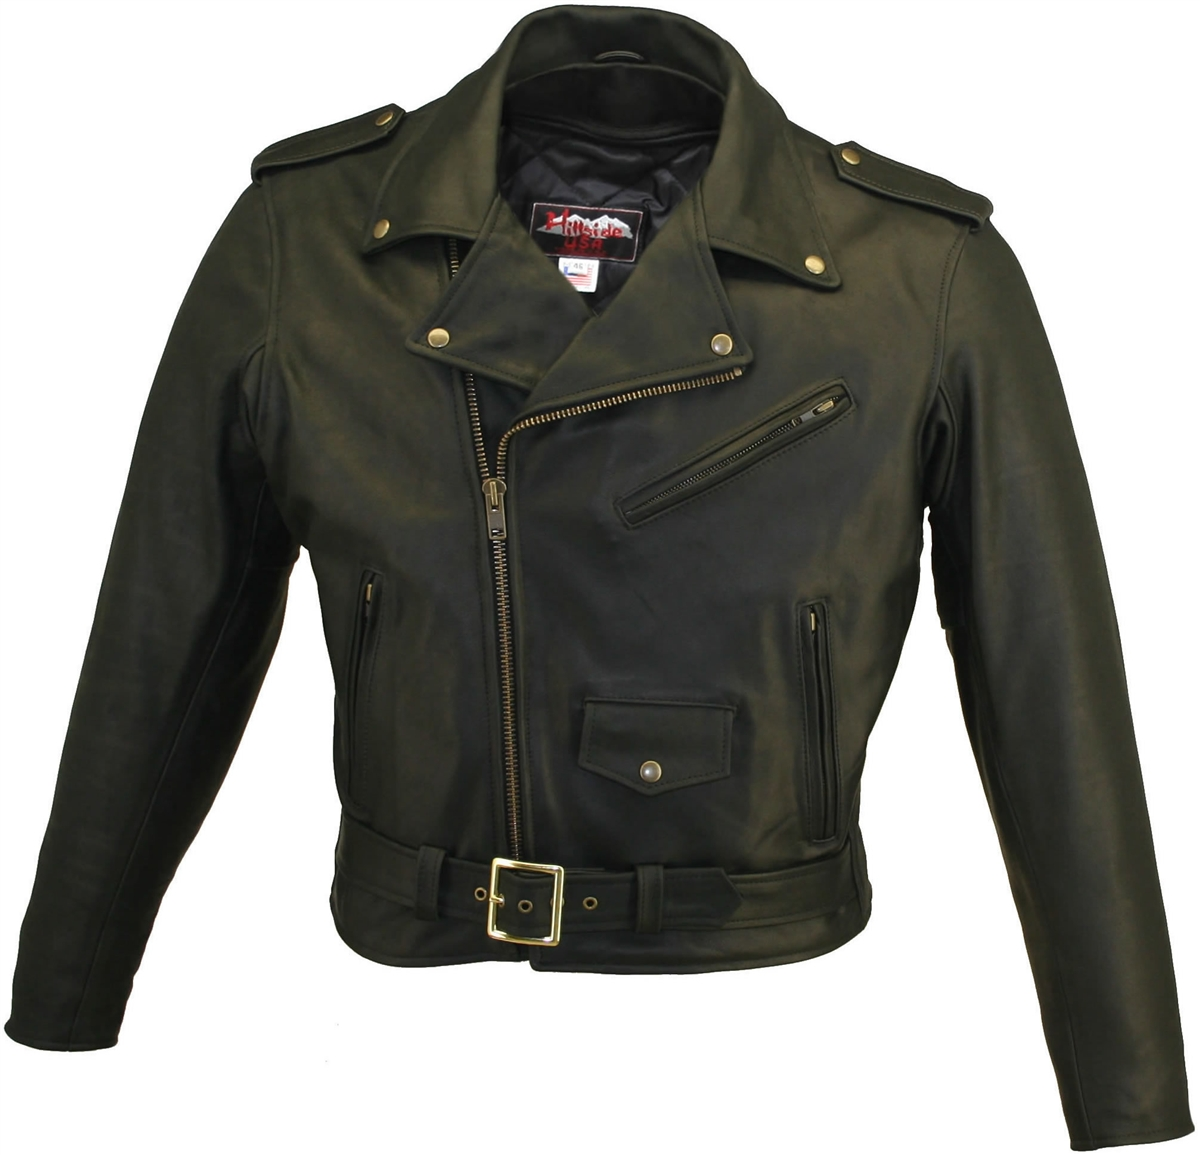 Men's Basic Biker Jacket. There is nothing basic about, it's outrageous style. This jacket is made of 1.6-1.8 mm (4-41/2 oz.) Soft, Supple, and Thick black Cowhide Naked Leather. Action back, zippered cuffs, and three leather lined outside zippered pocket